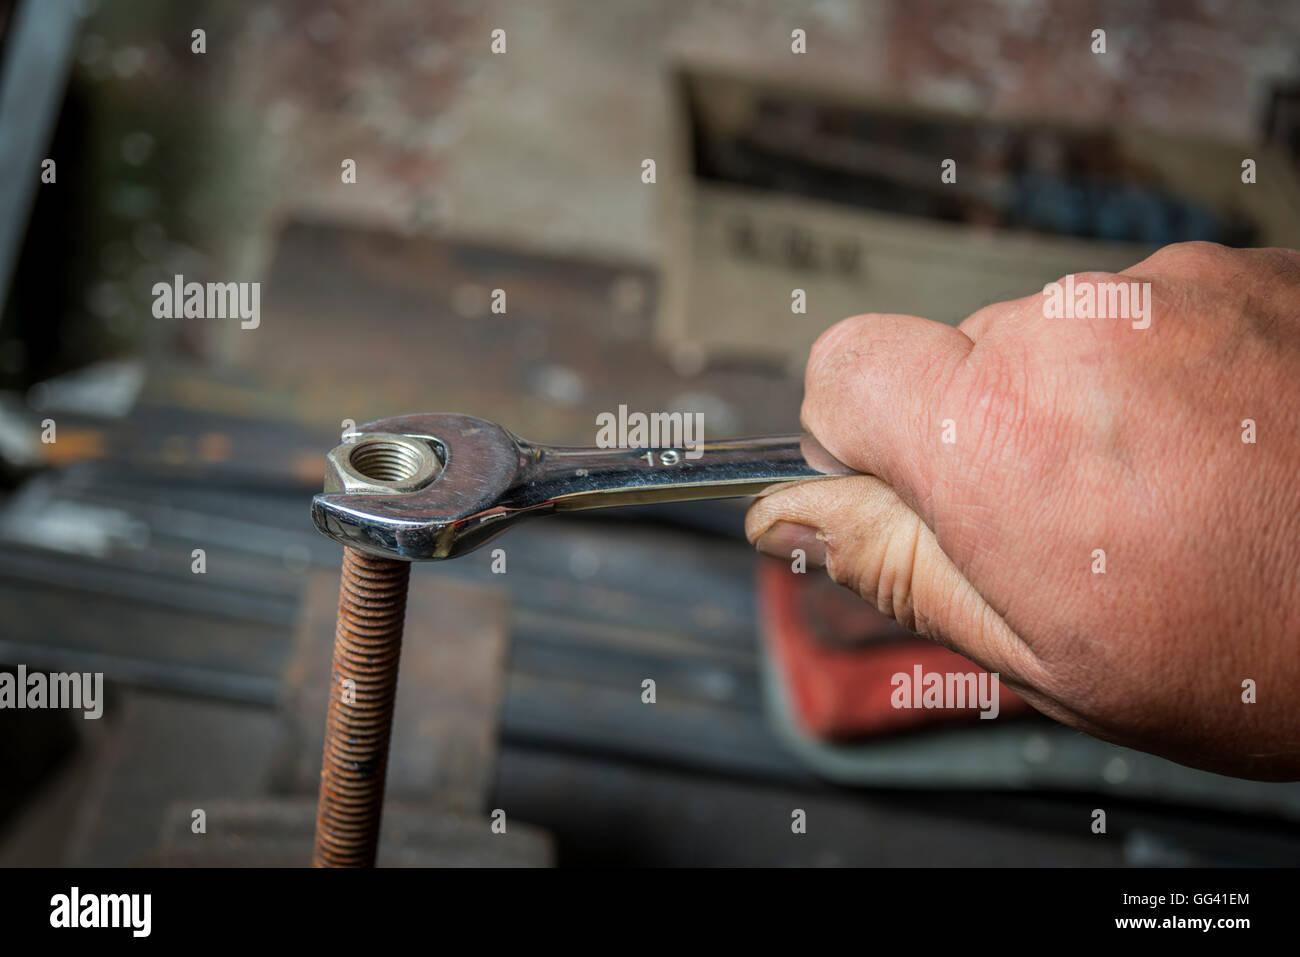 worker hand tightening or loosening a nut of a rusty bolt with a wrench on white background - Stock Image